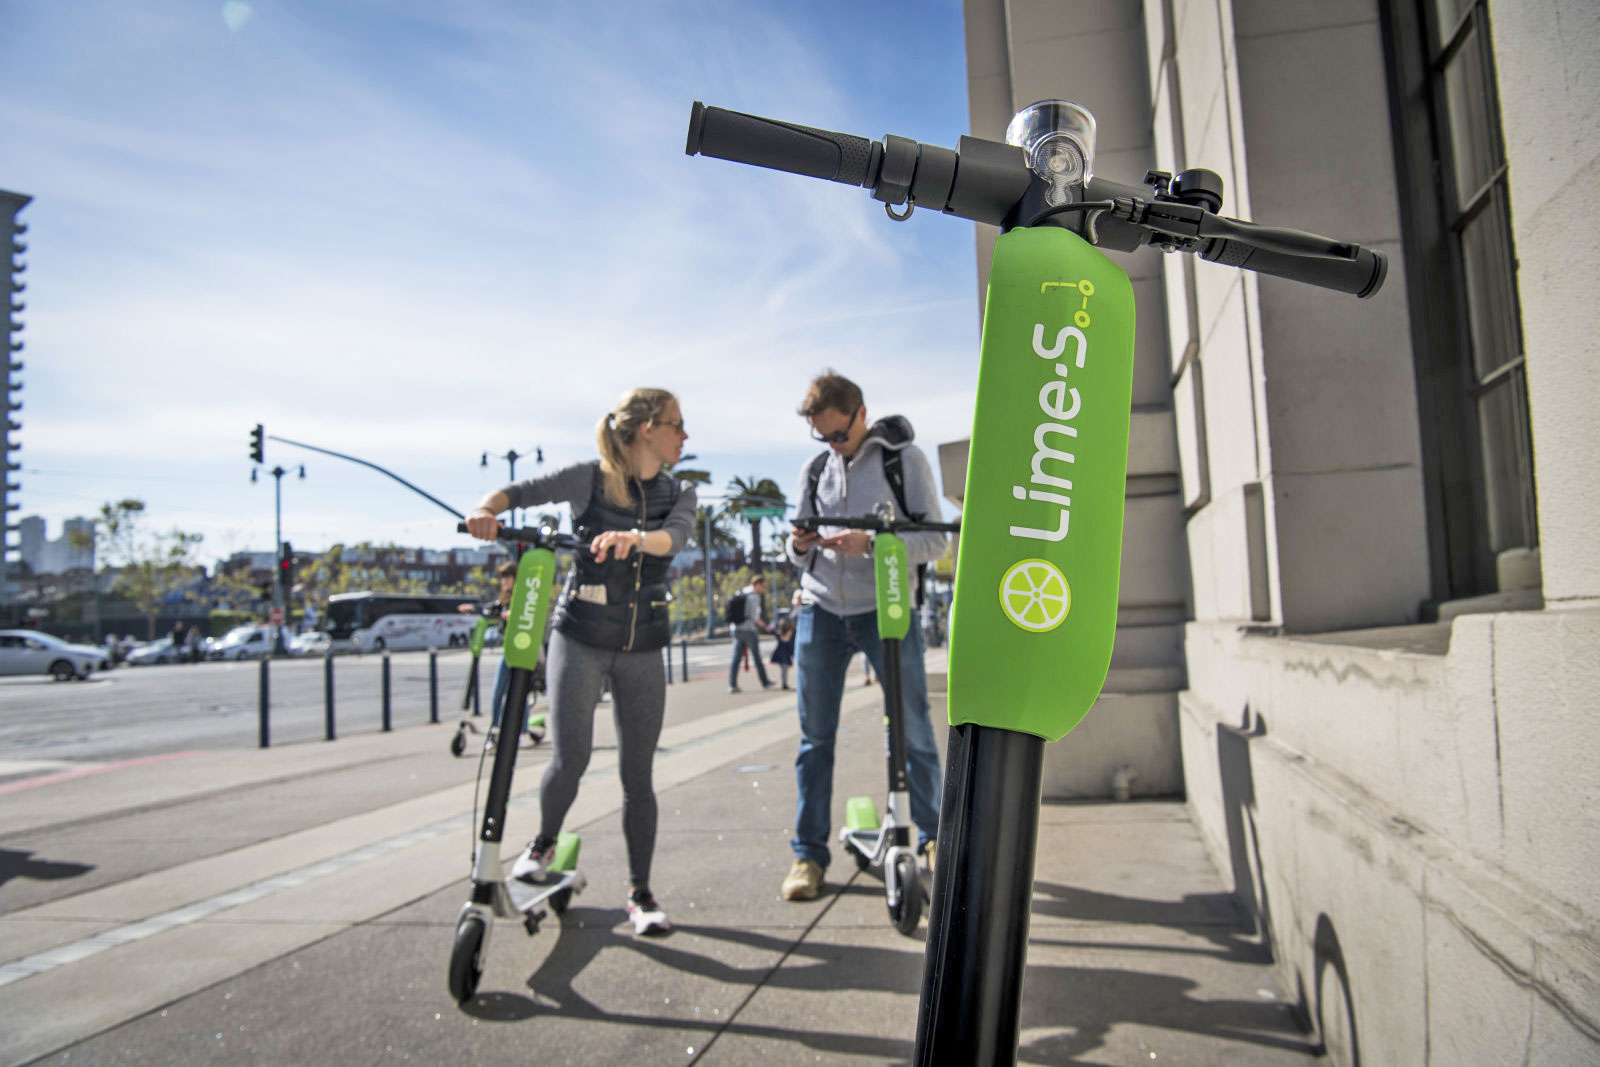 San Francisco temporarily removes electric scooters for permit process